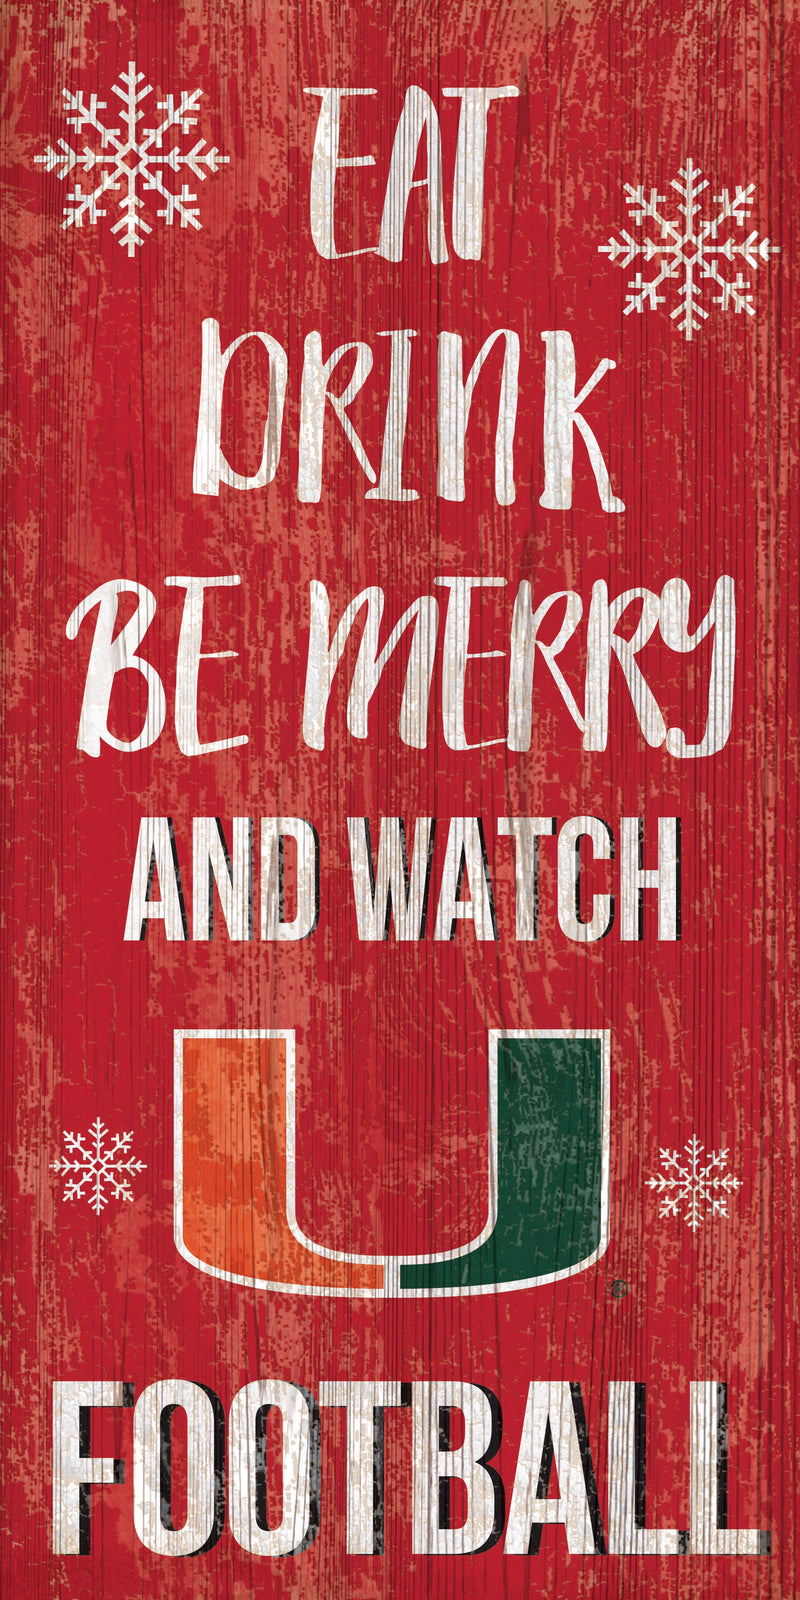 Miami Hurricanes Eat, Drink, Be Merry Wooden Sign - 6